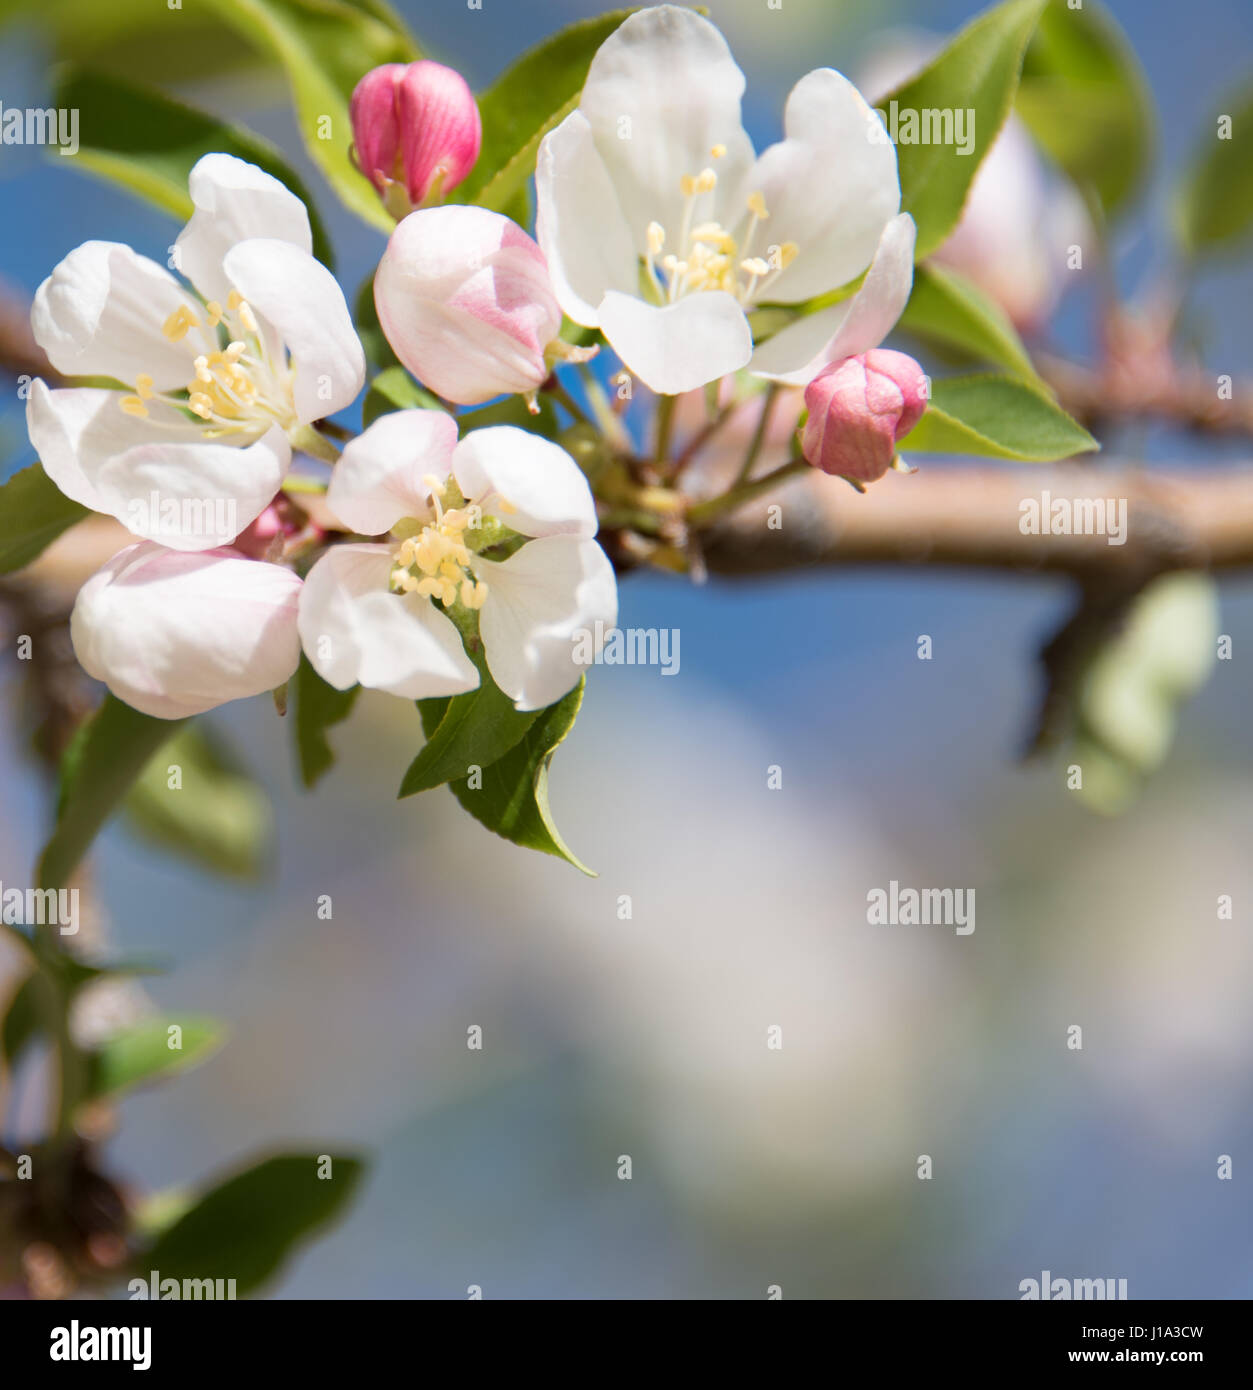 Blooming Apple Tree Branch With A Natural Blurry Background Pink And White Flowers Spring